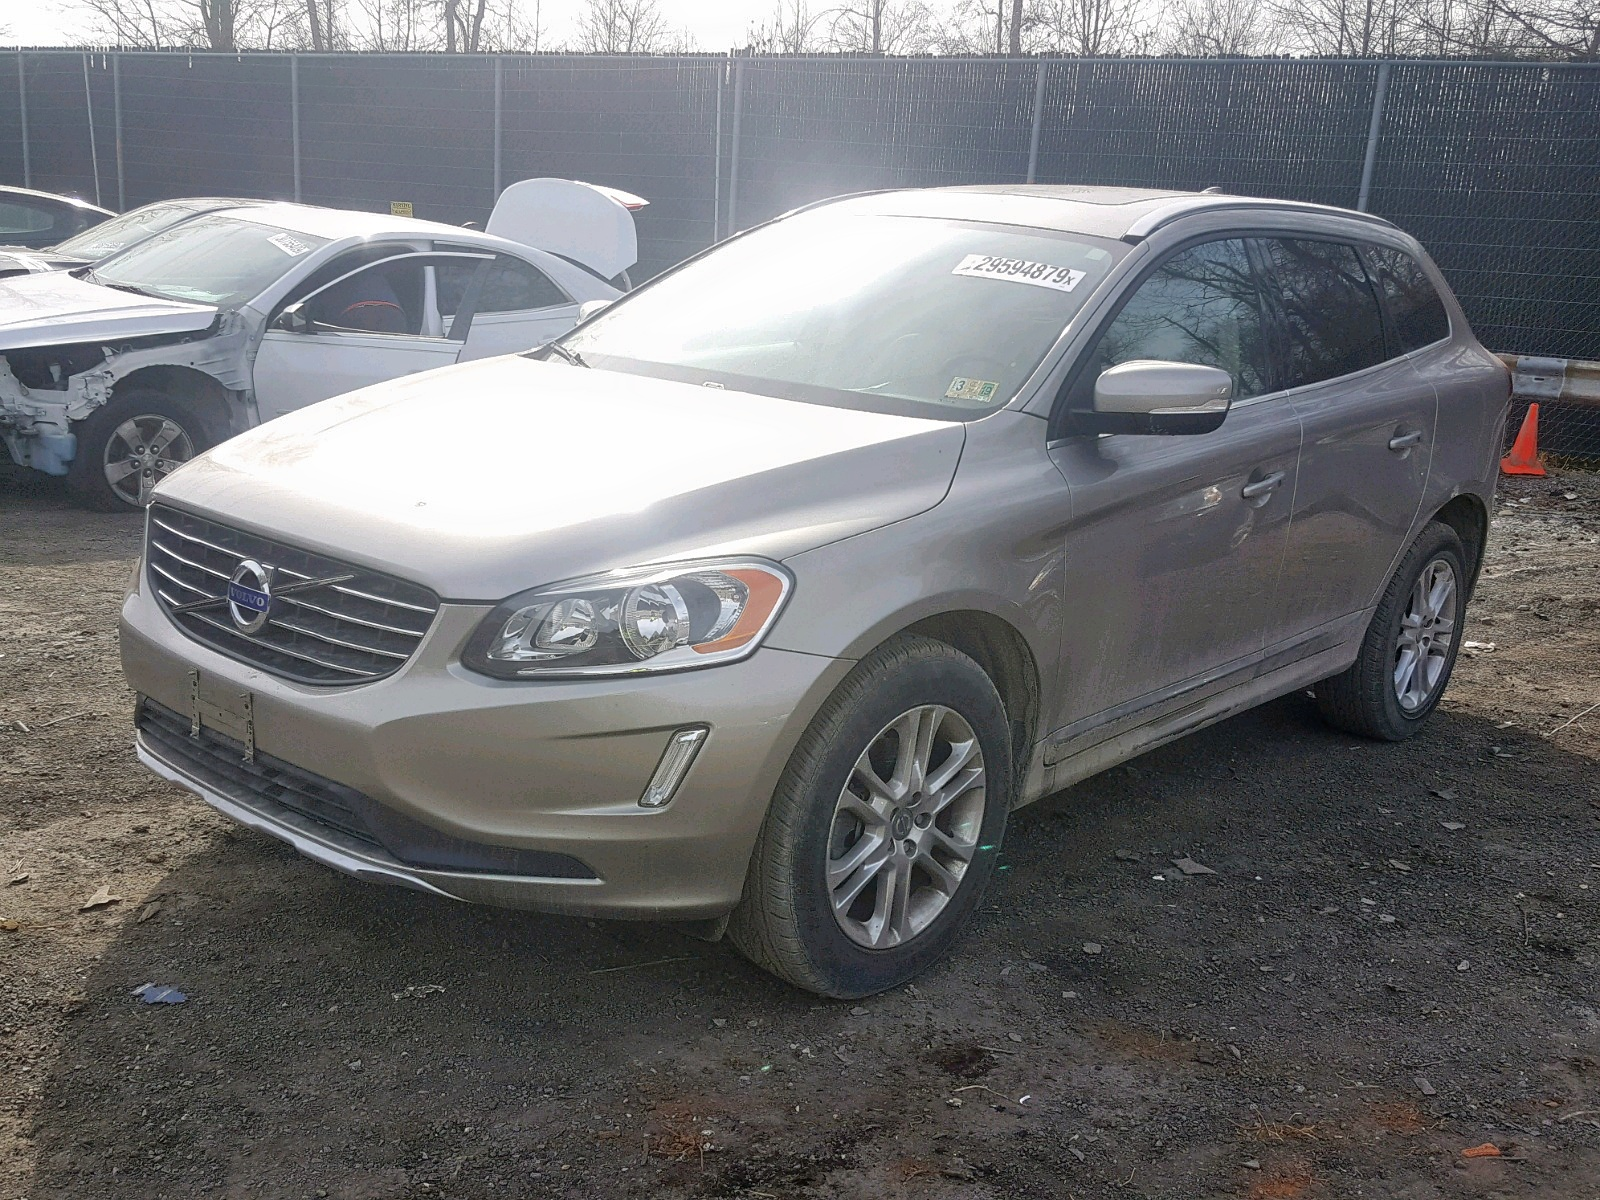 YV440MDB6F2578442 - 2015 Volvo Xc60 T5 2.0L Right View